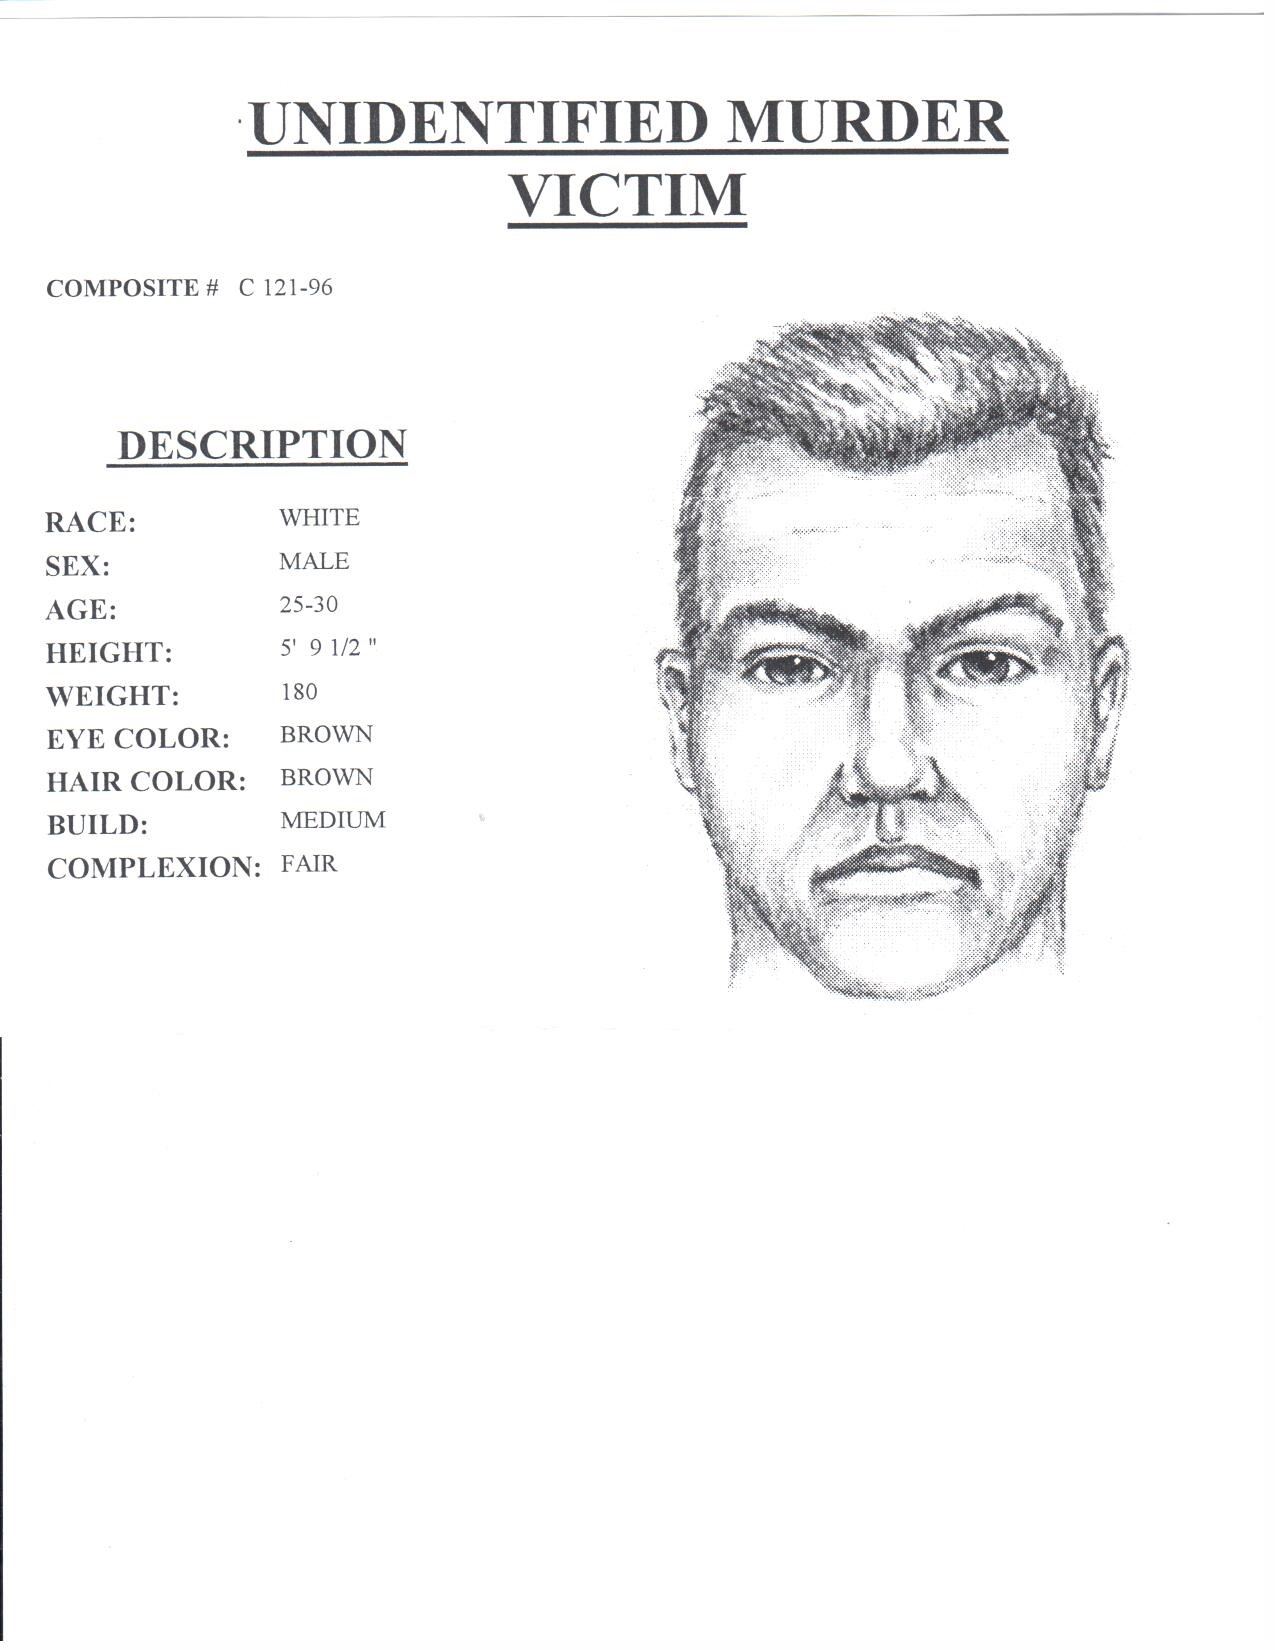 Middlesex County Crime Stoppers